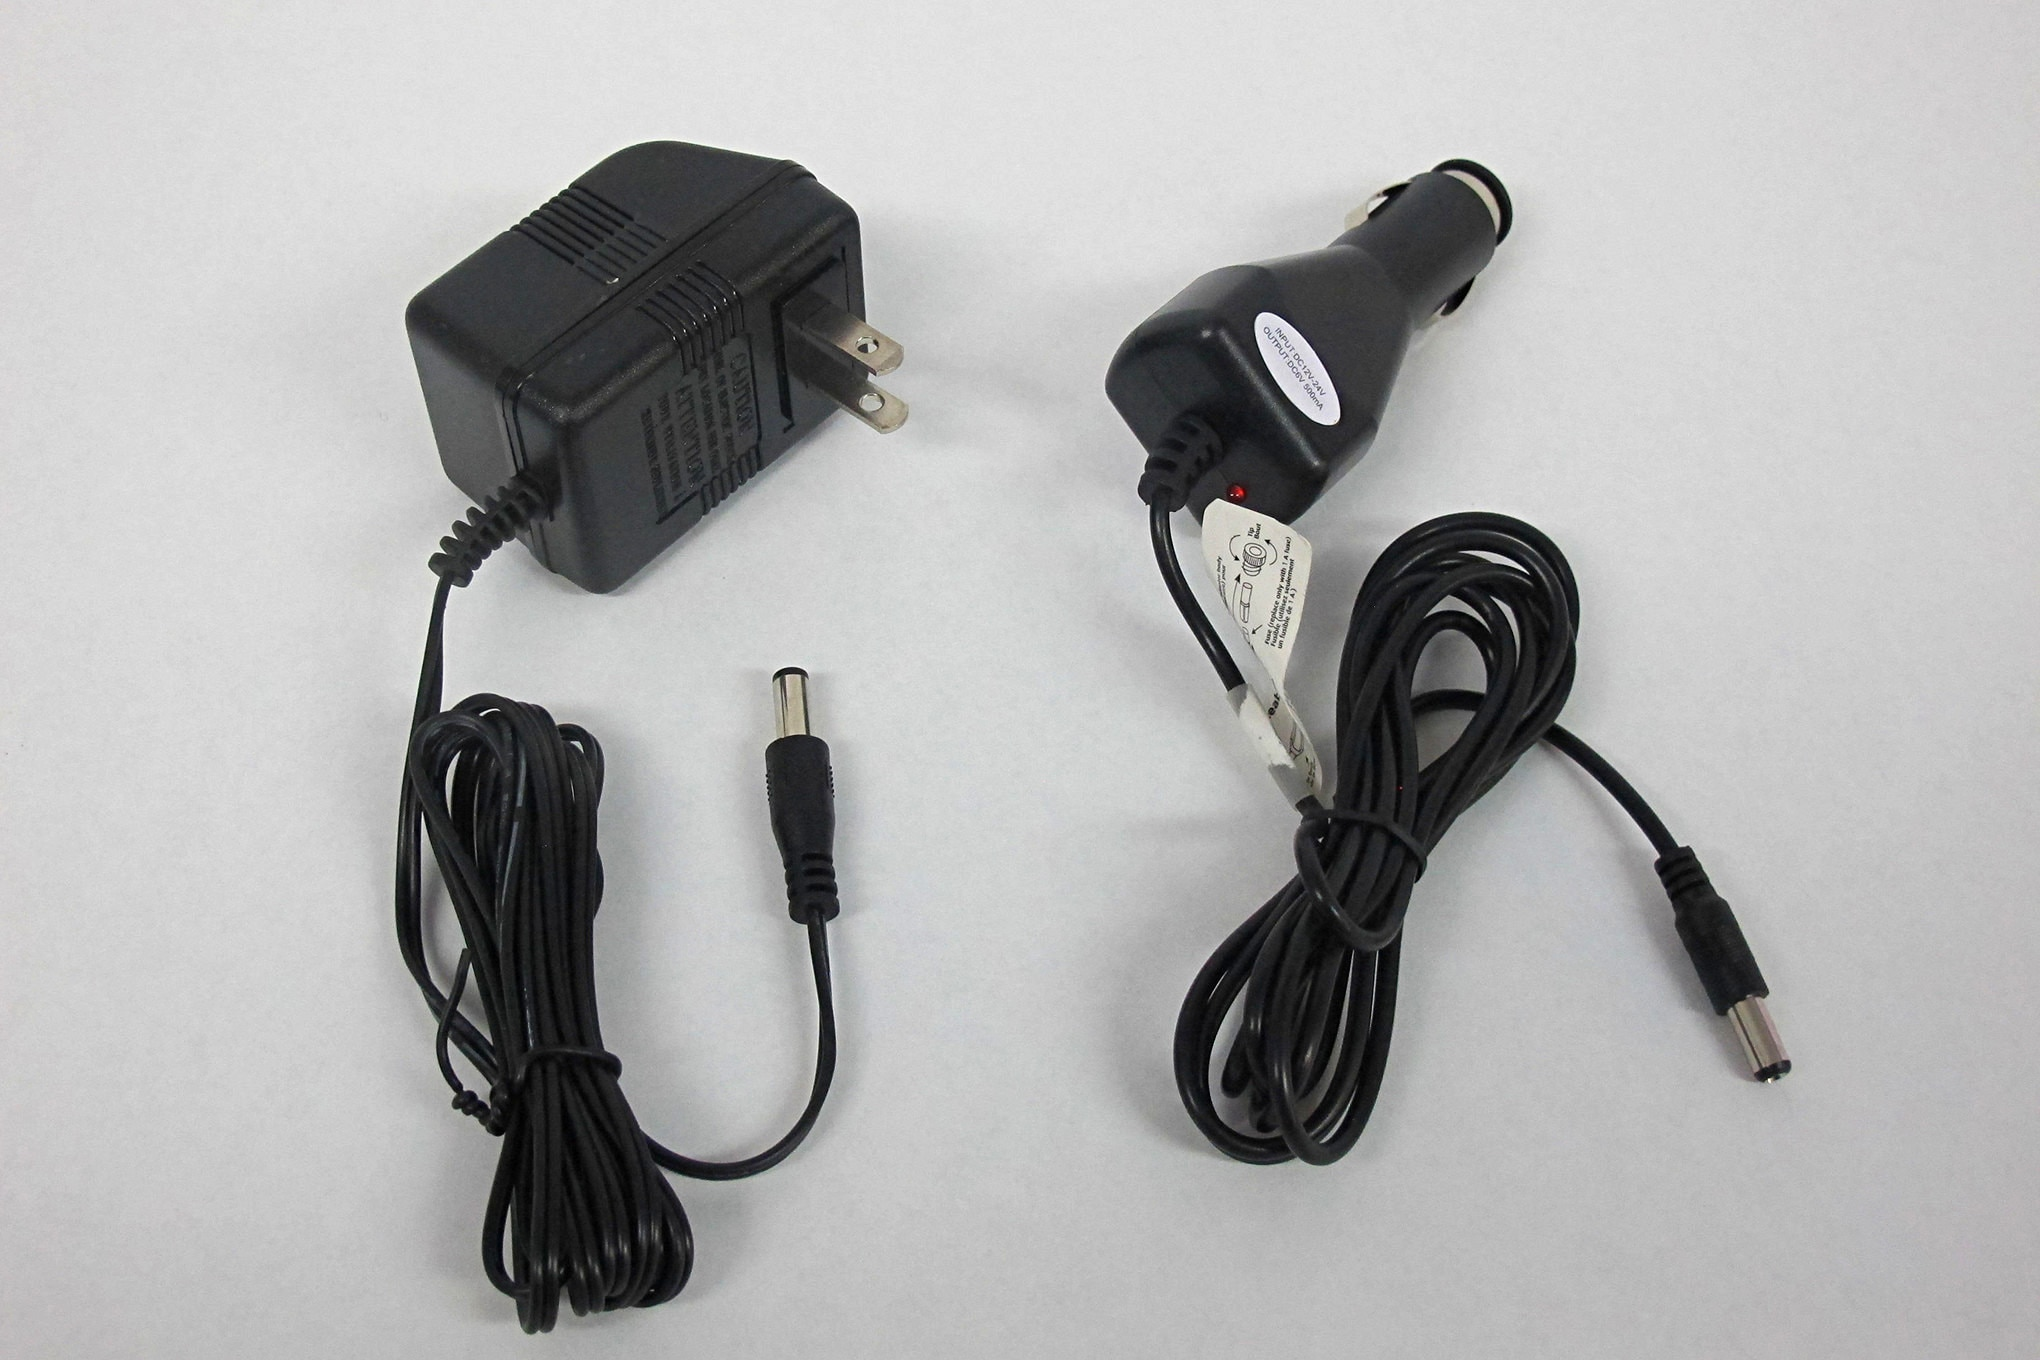 07 Mychanic LED PIK Light Chargers